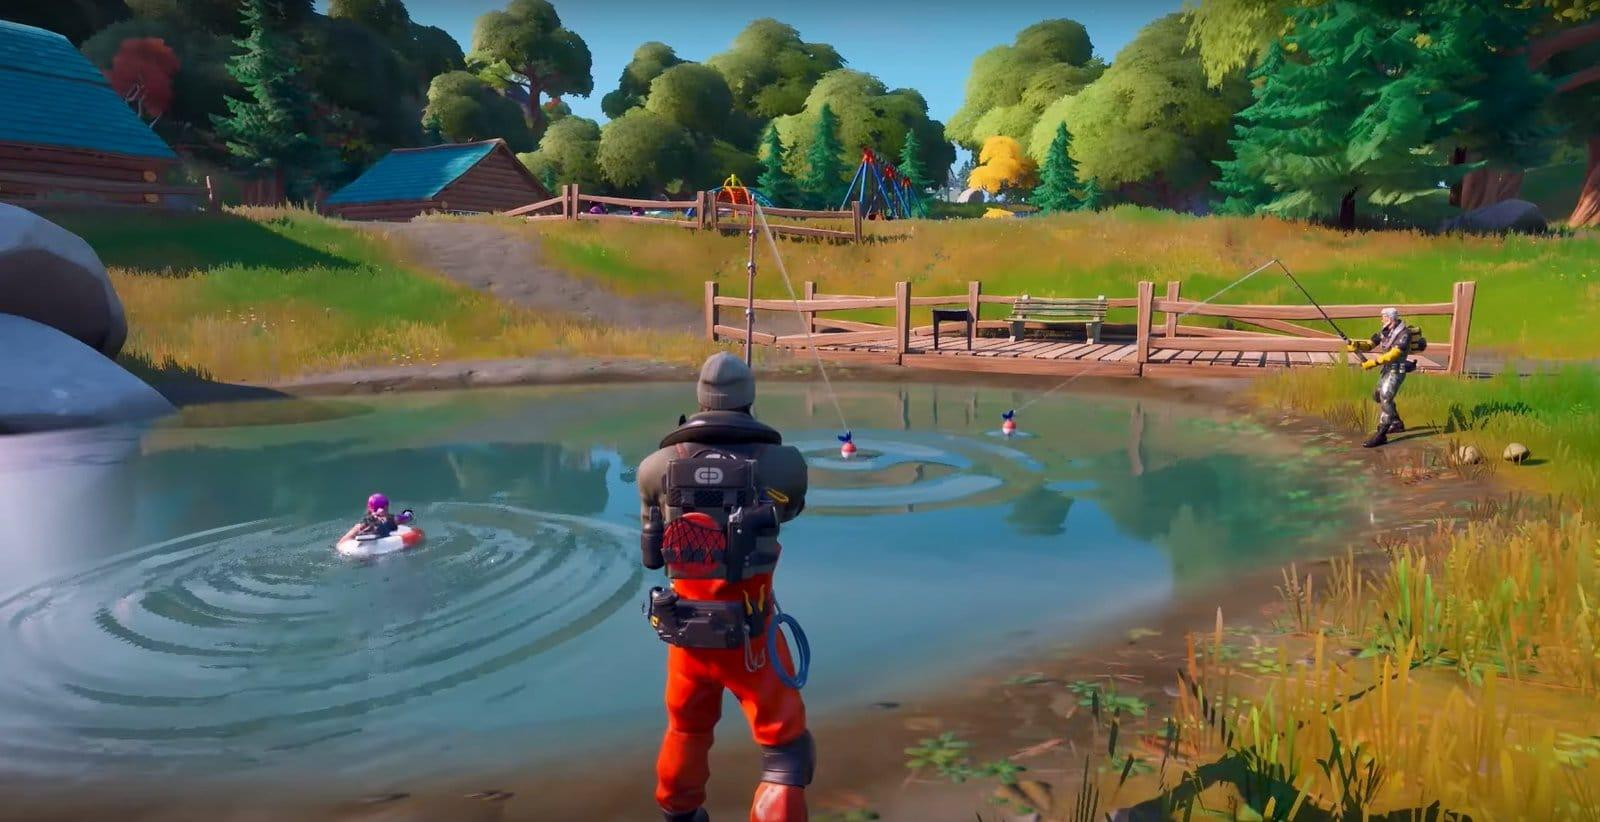 Bikini Royale Trailer leaked 'fortnite' chapter 2 trailer showcases a new map and